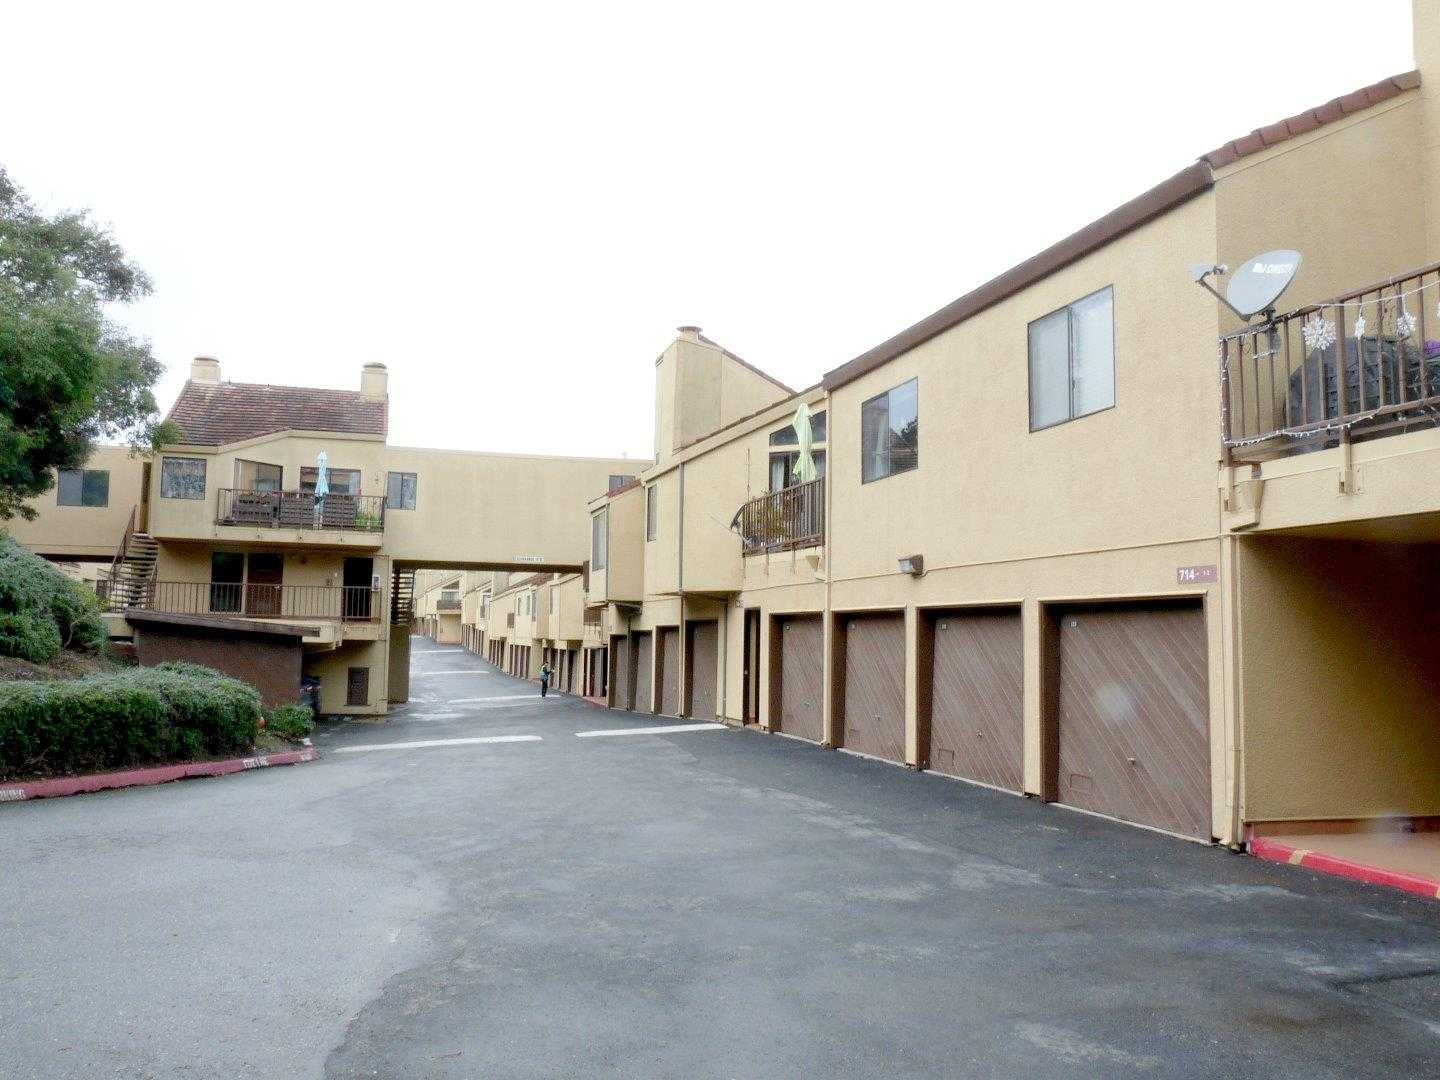 1 Appian Way Unit 713-3 South San Francisco, CA 94080